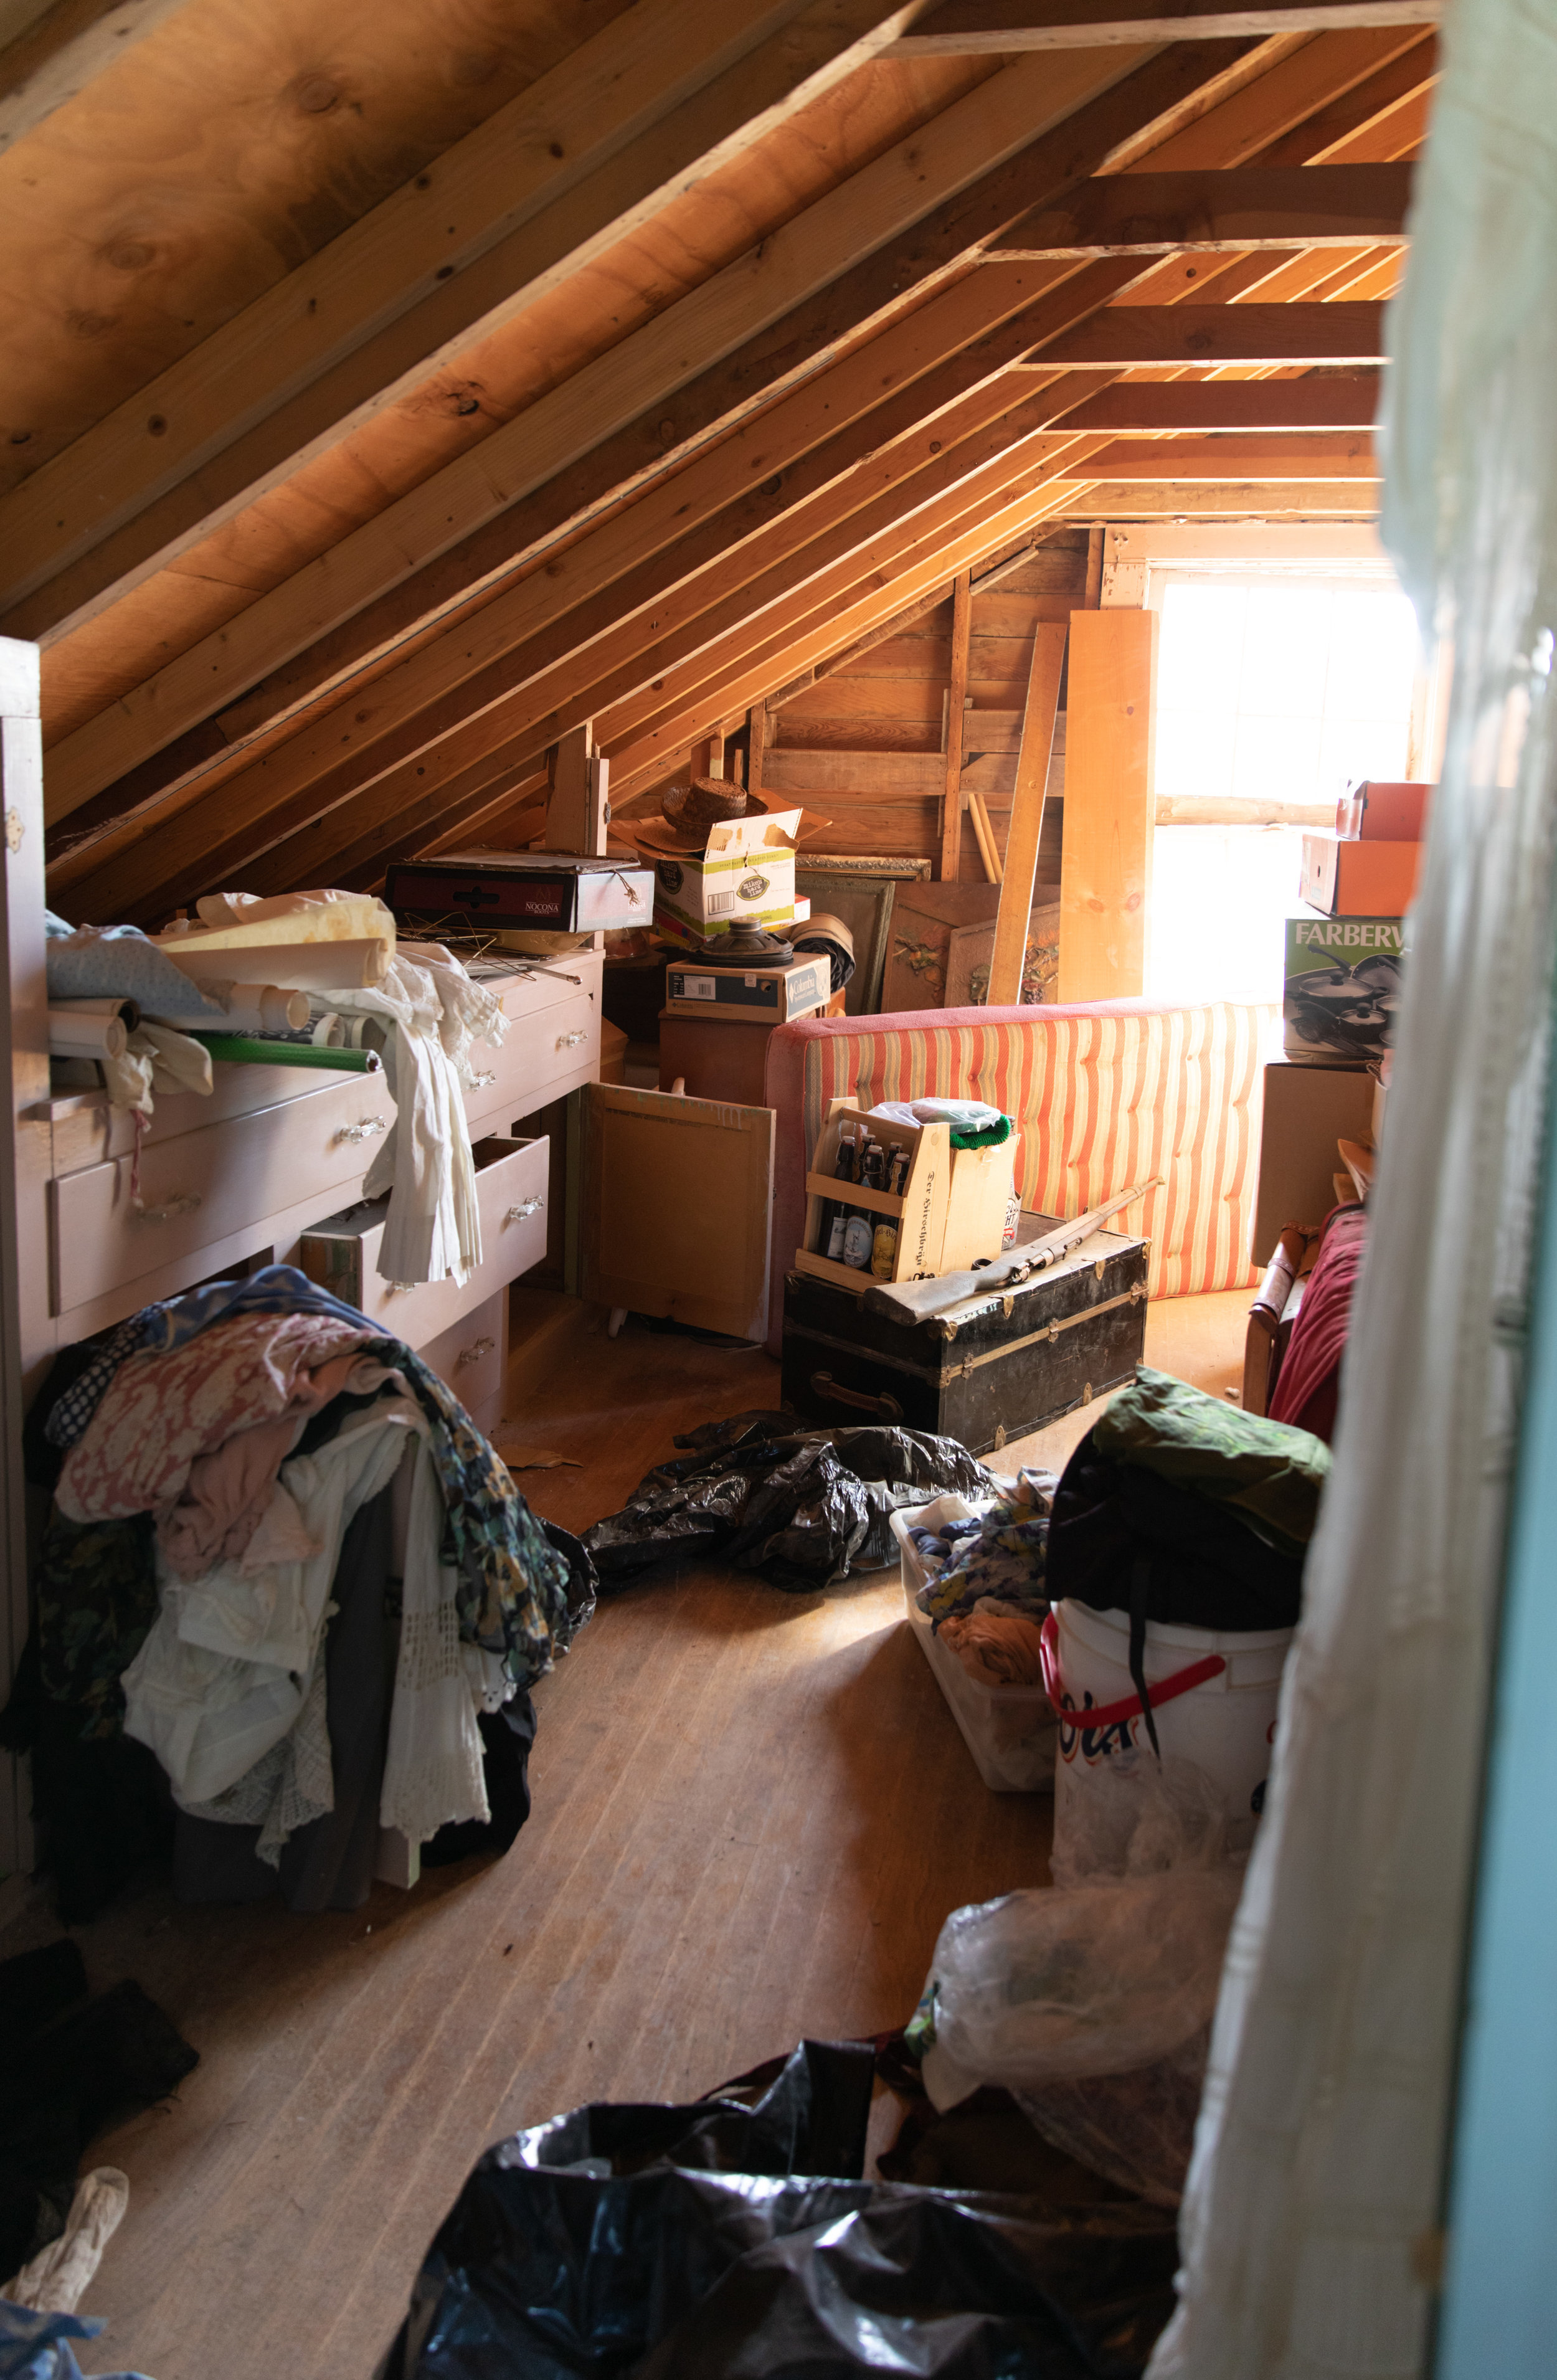 The second bedroom in the ranch headquarters where many of her items were found.